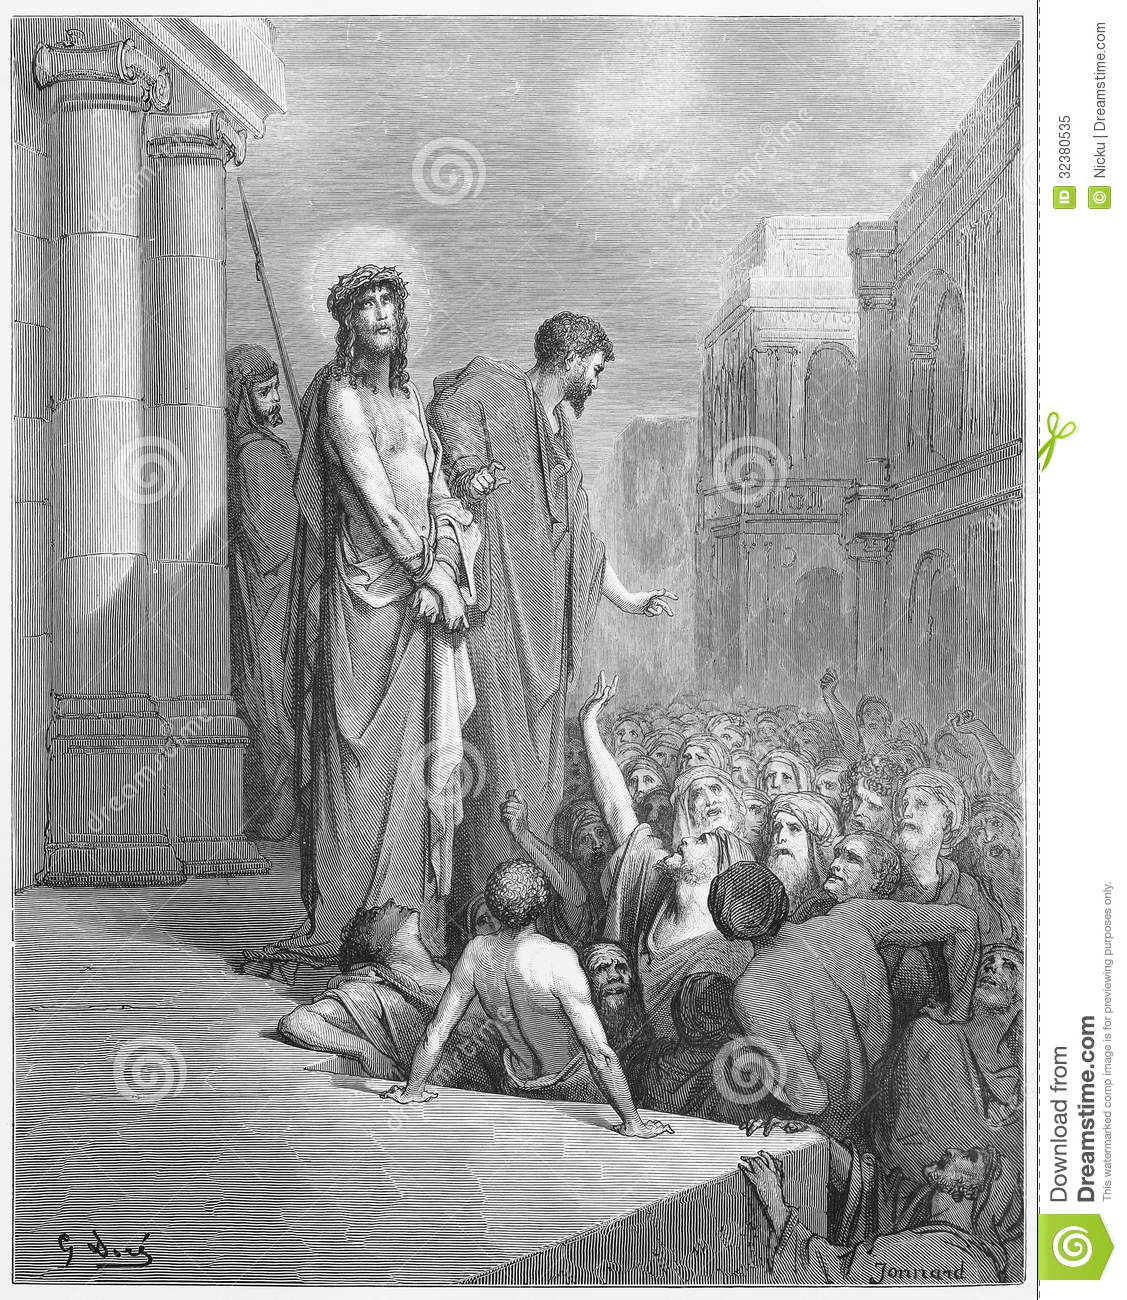 Jesus Is Presented to the People